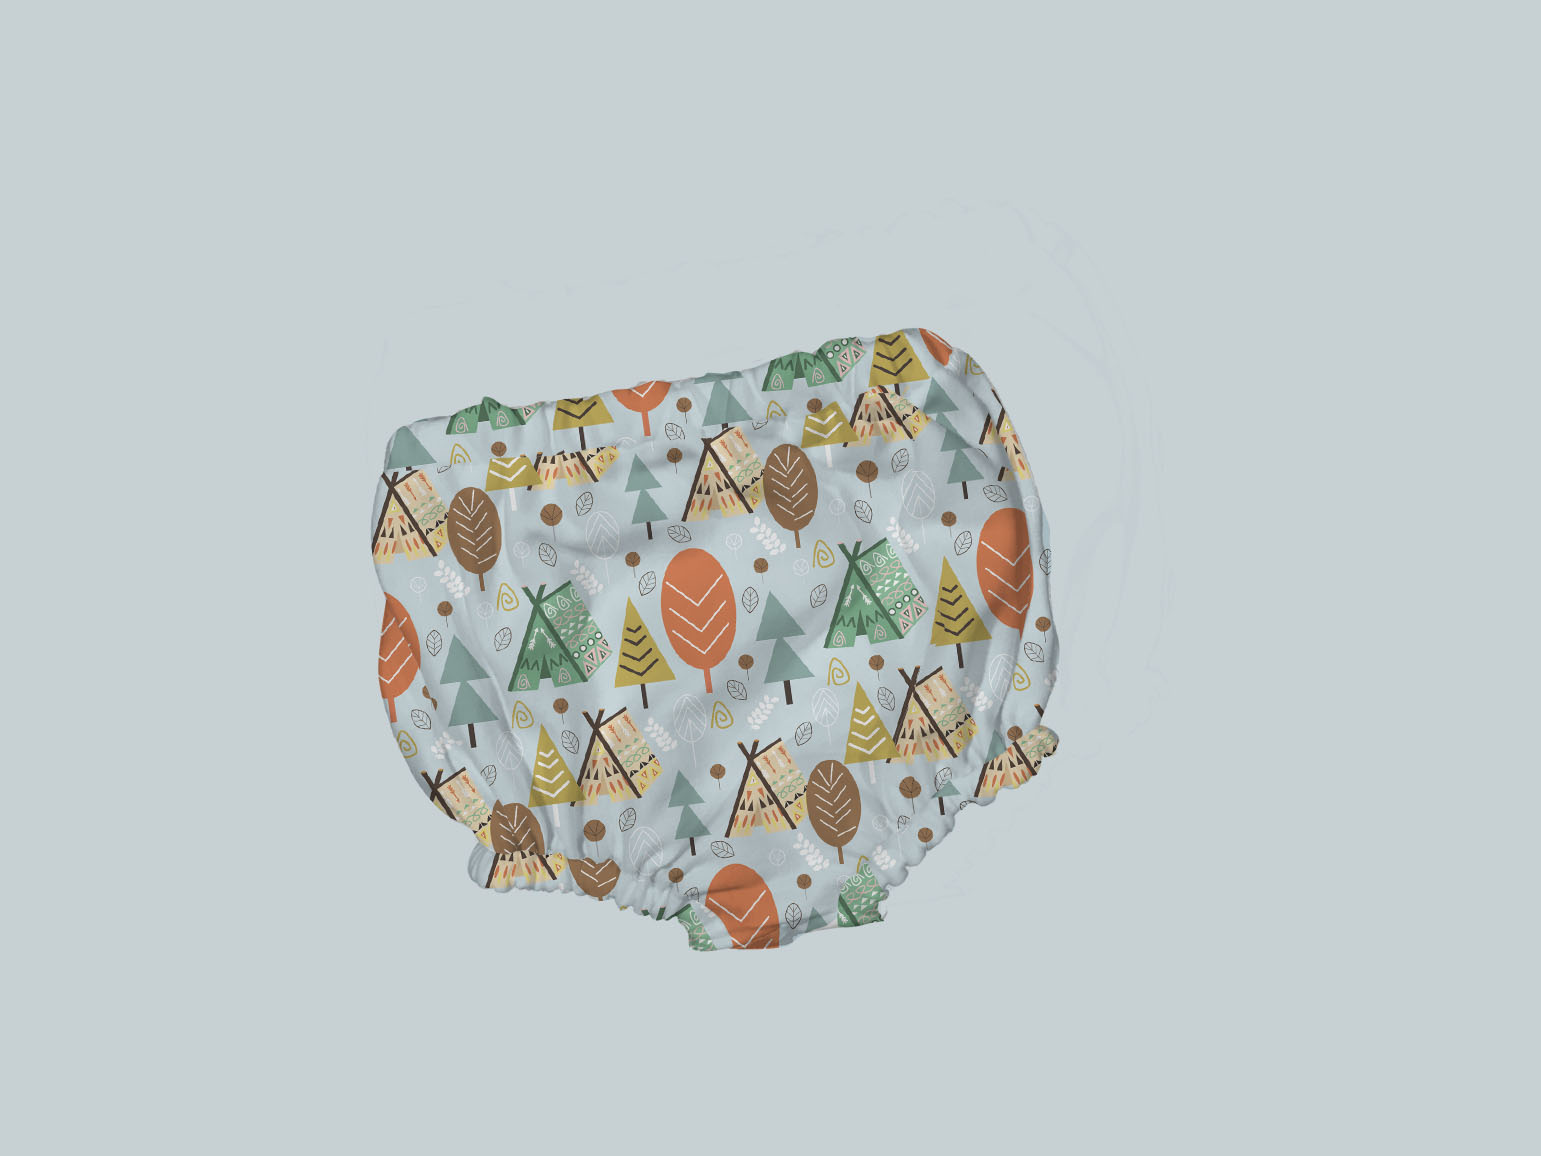 Bummies/Diaper Cover - Camping